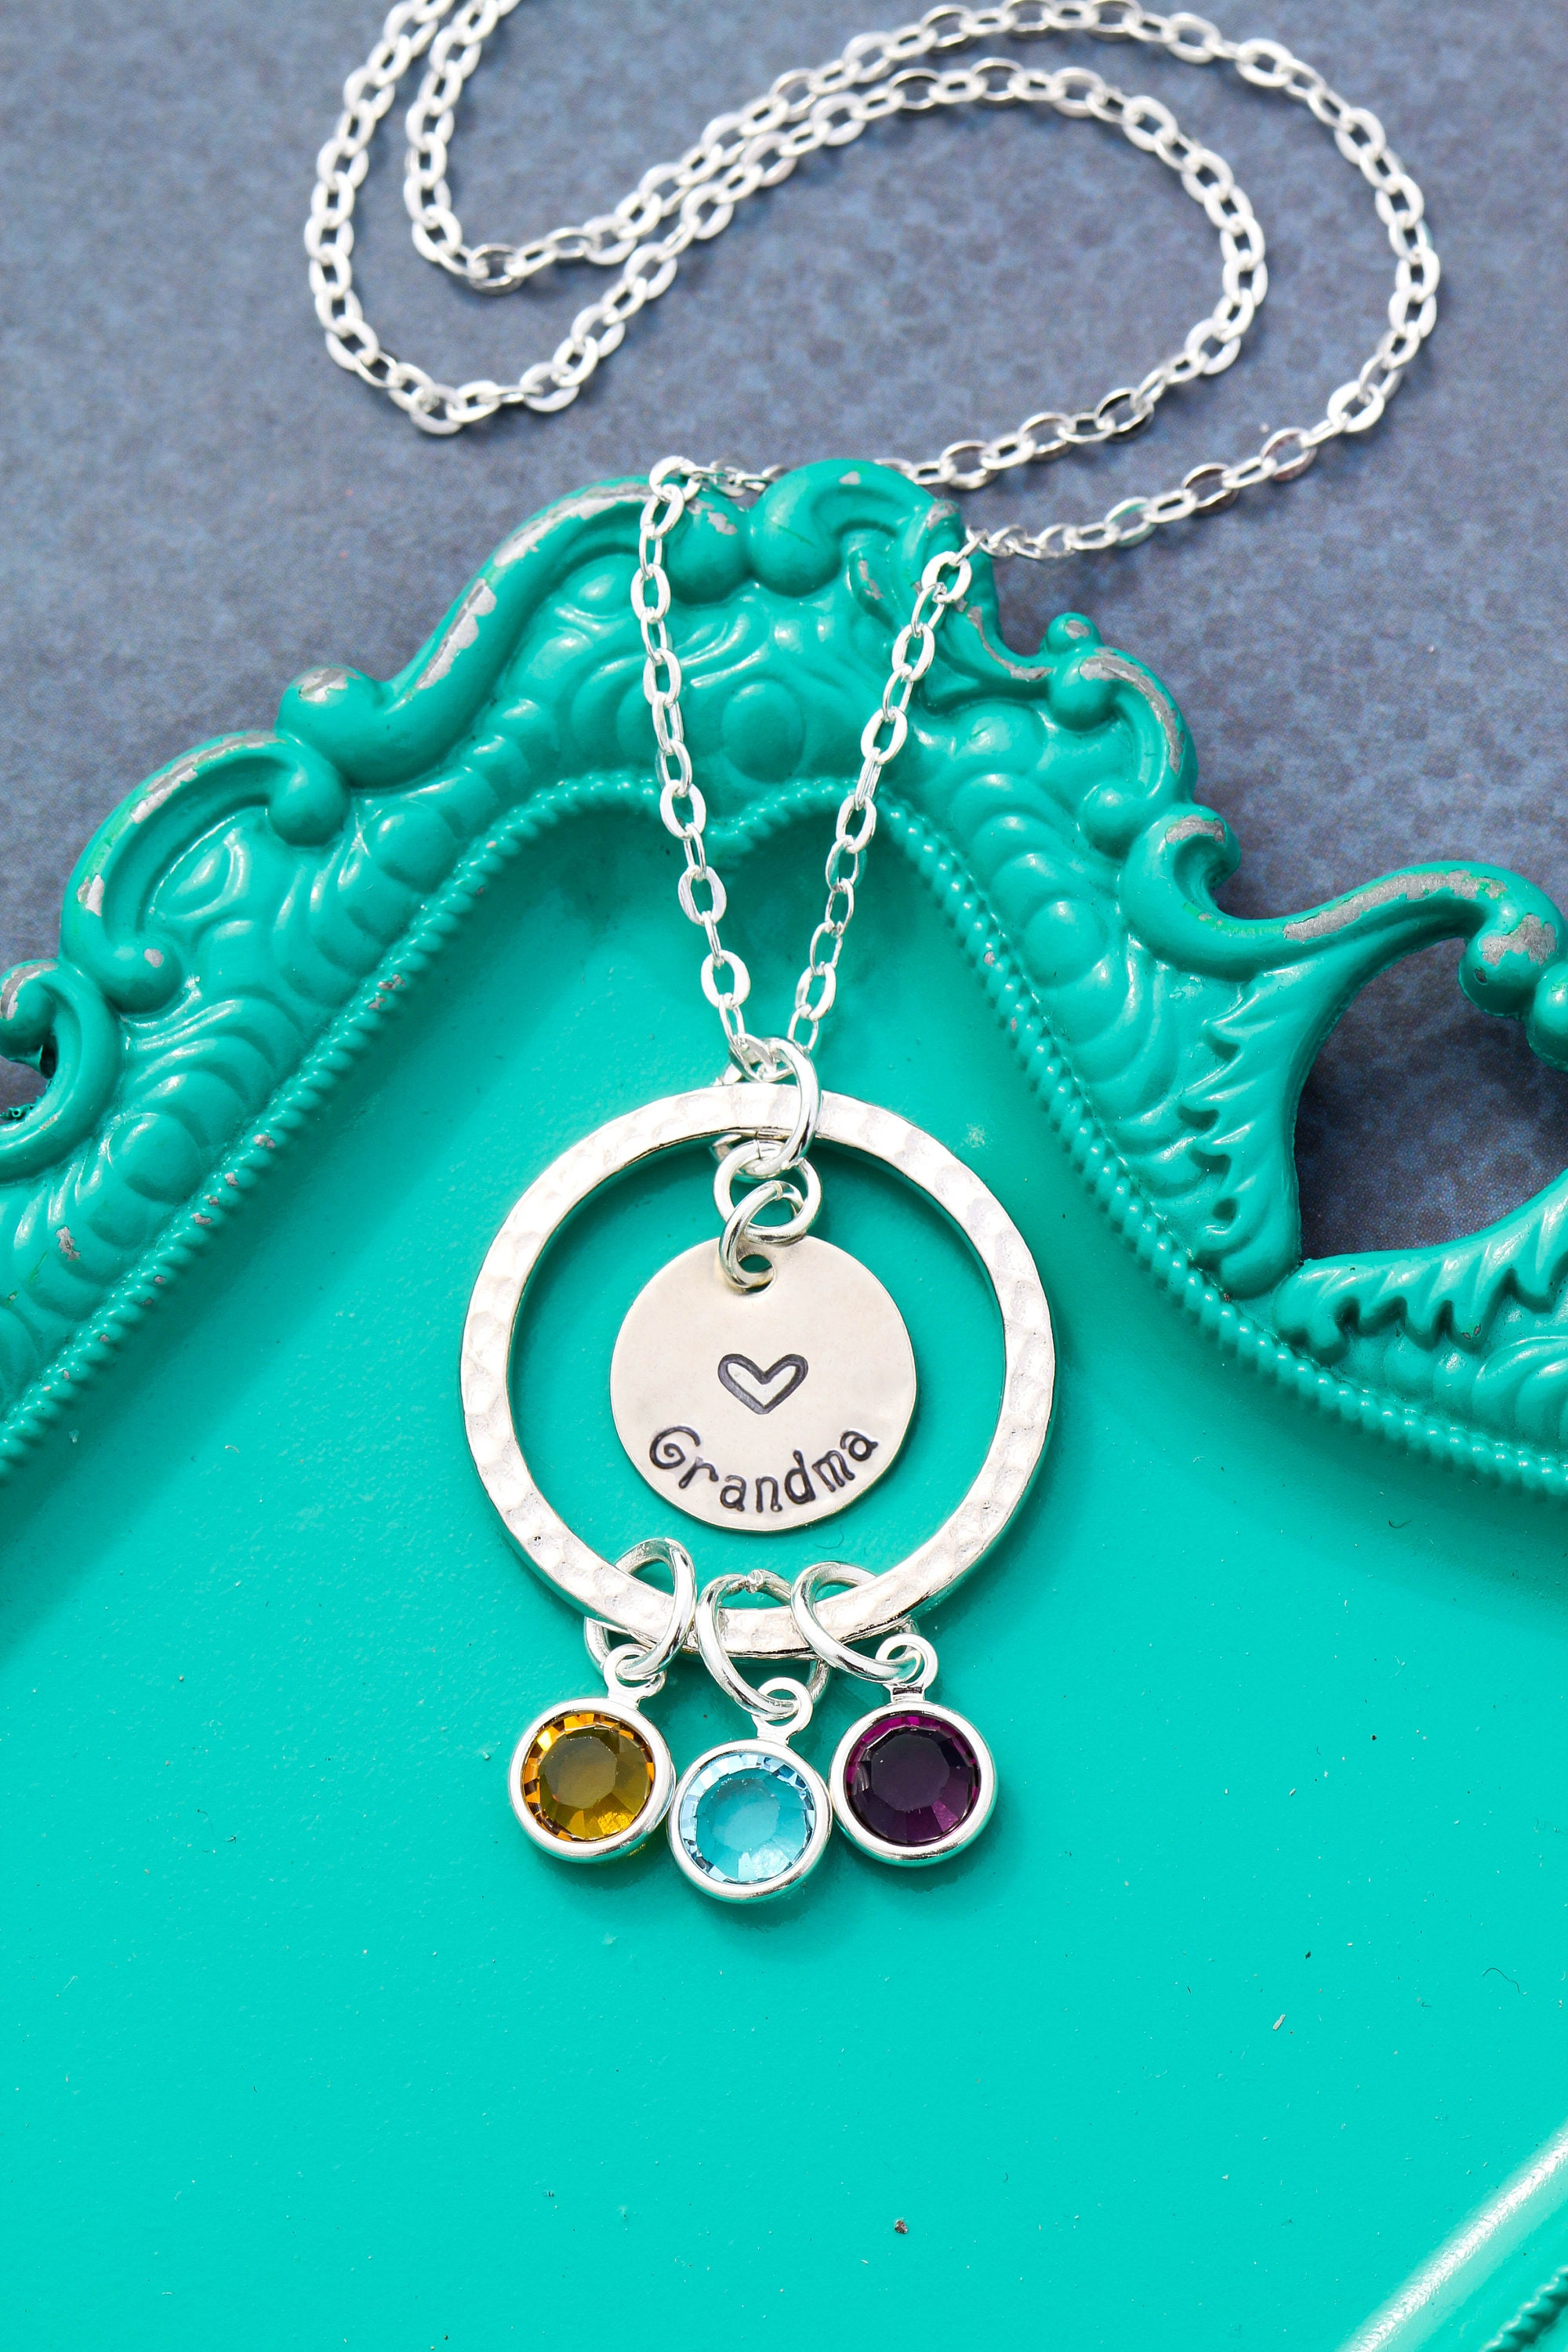 jewelry il listing hhas birthstone mothers grandkid necklace initial gifts zoom fullxfull day